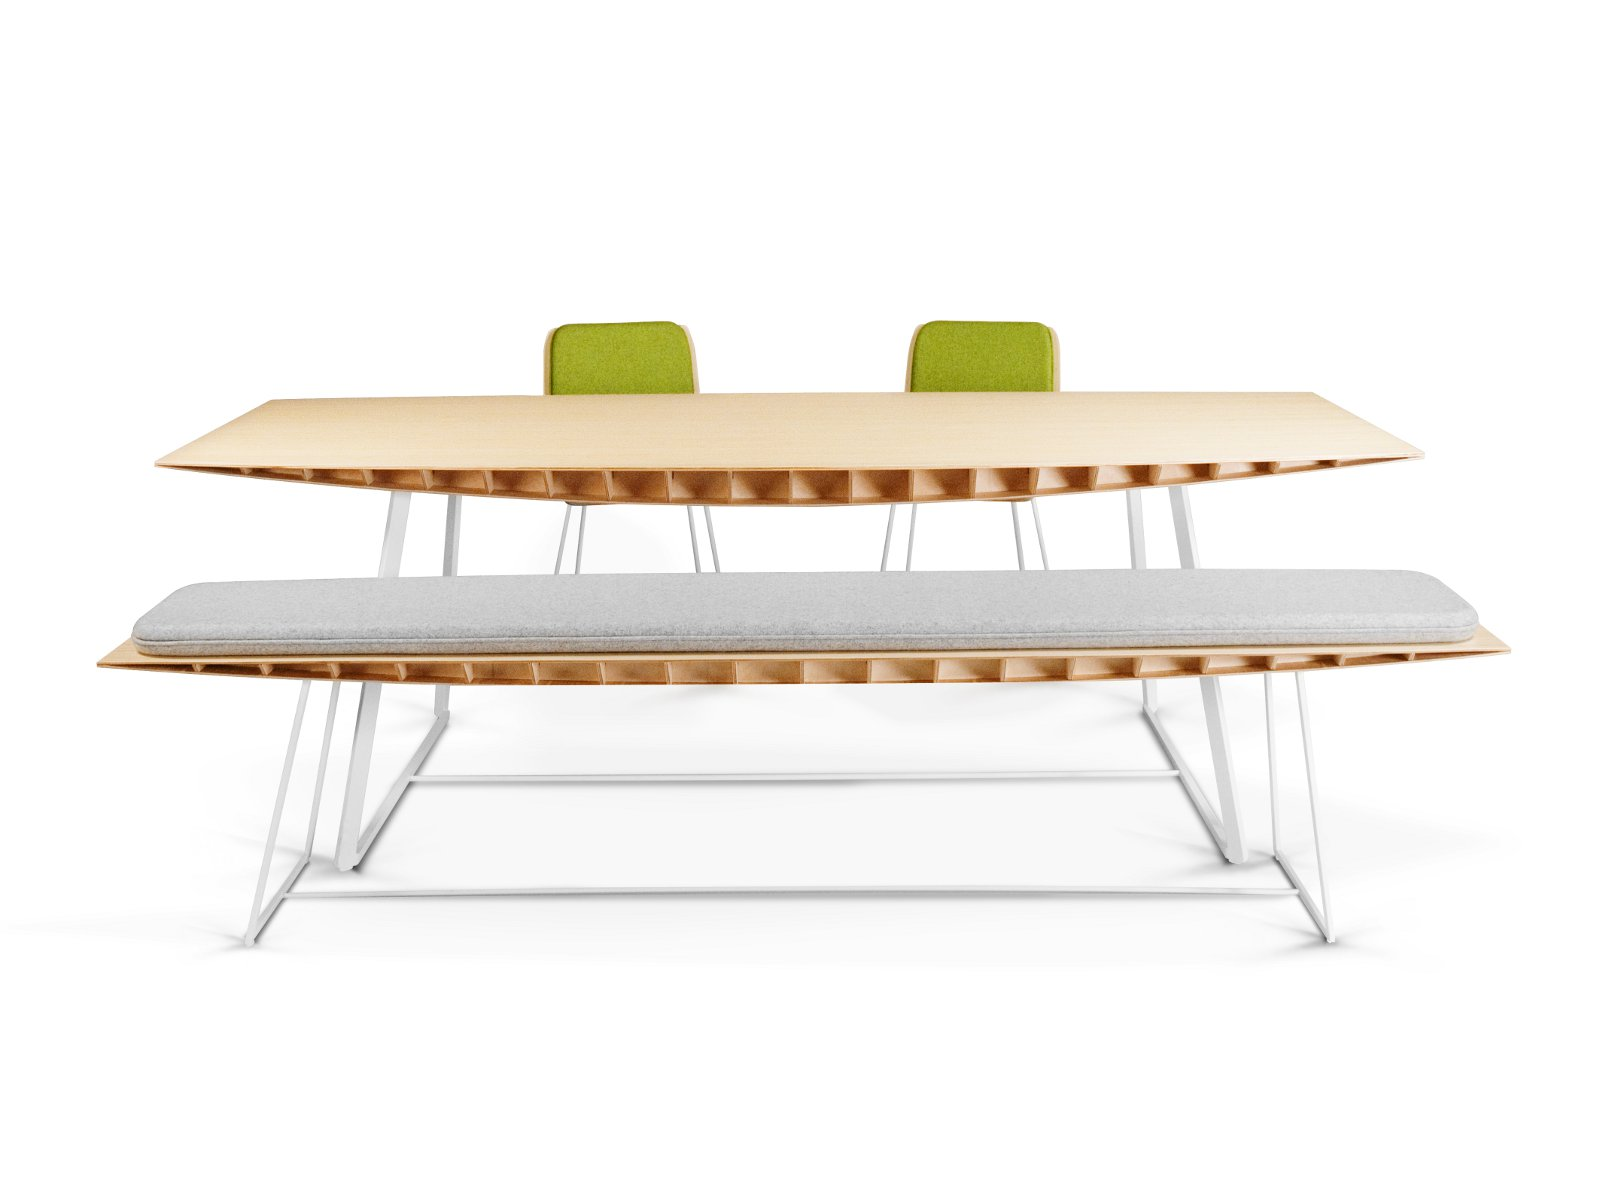 BEE Bench by La Maison Turrini design Fritsch-Durisotti